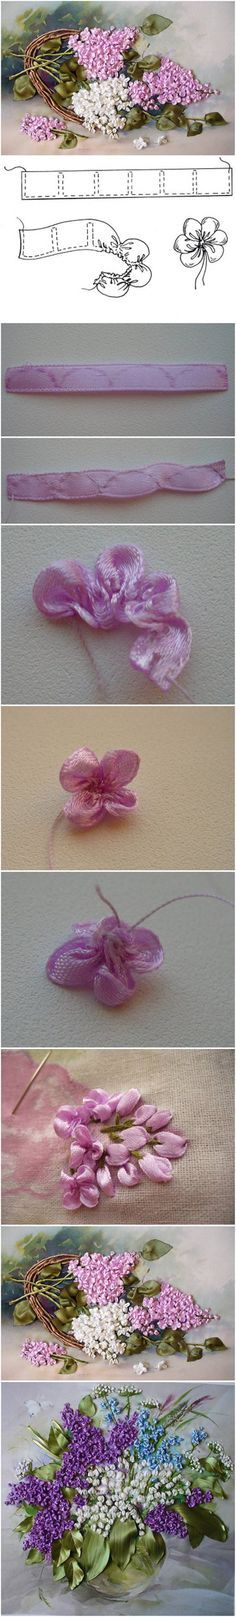 How to Make Embroidery Ribbon Lilac Flowers